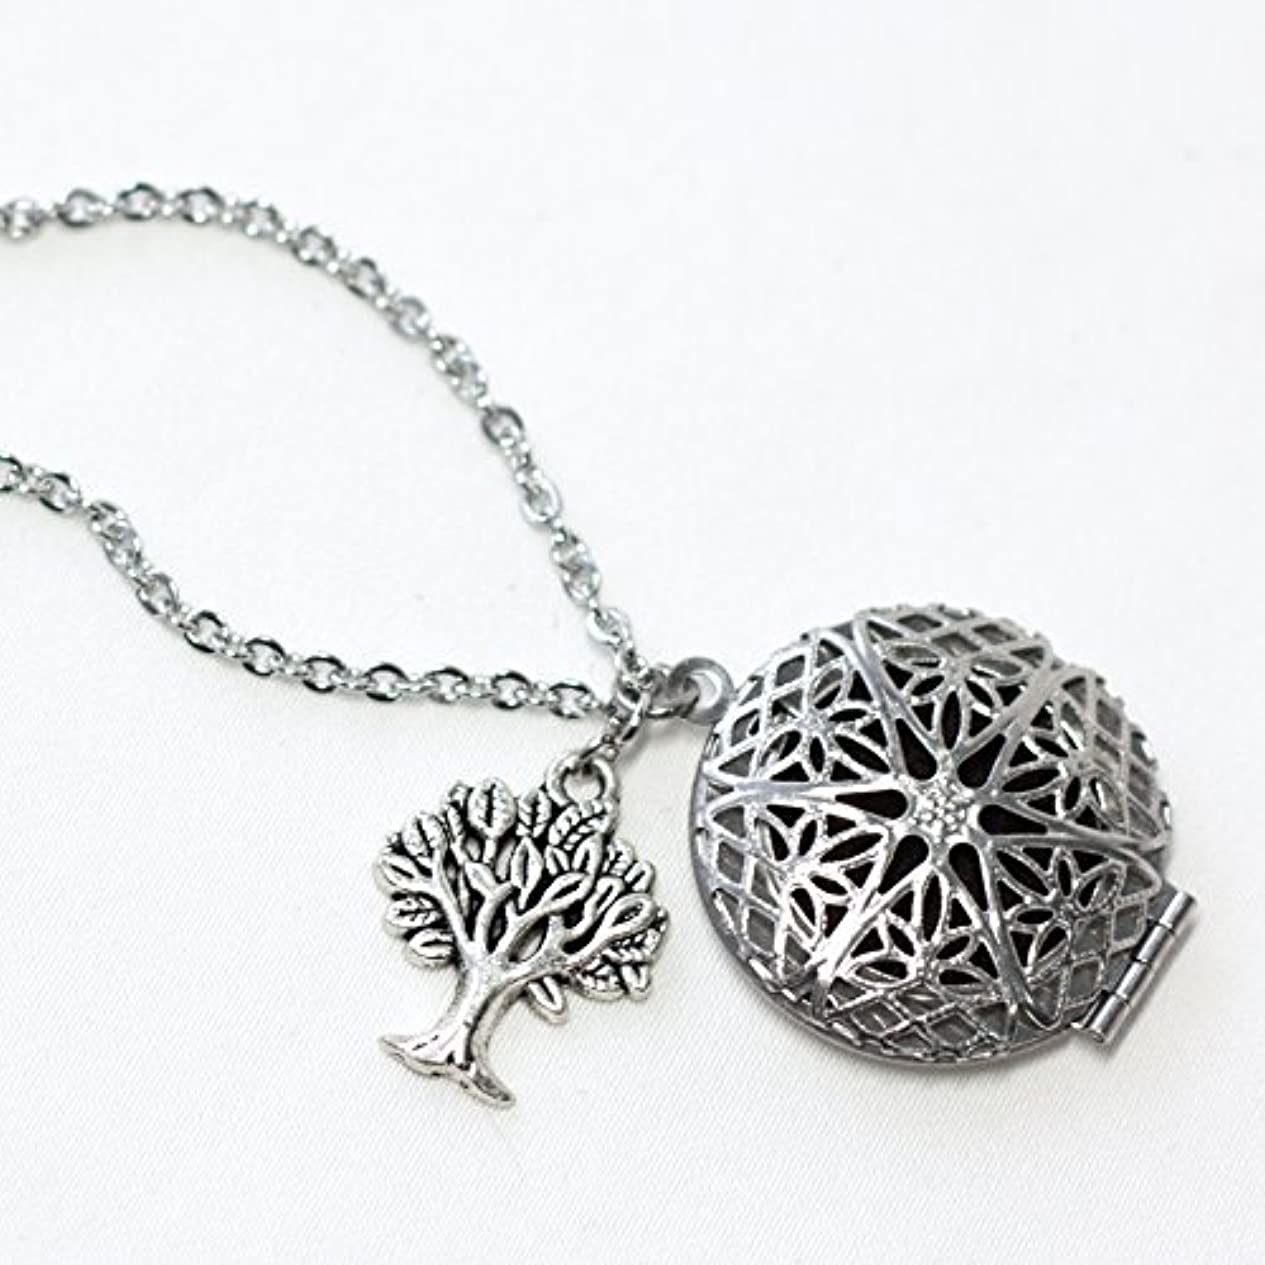 汚れる証明プラスTree Diffuser Necklace for Essential Oils 18 inches with felt pads [並行輸入品]